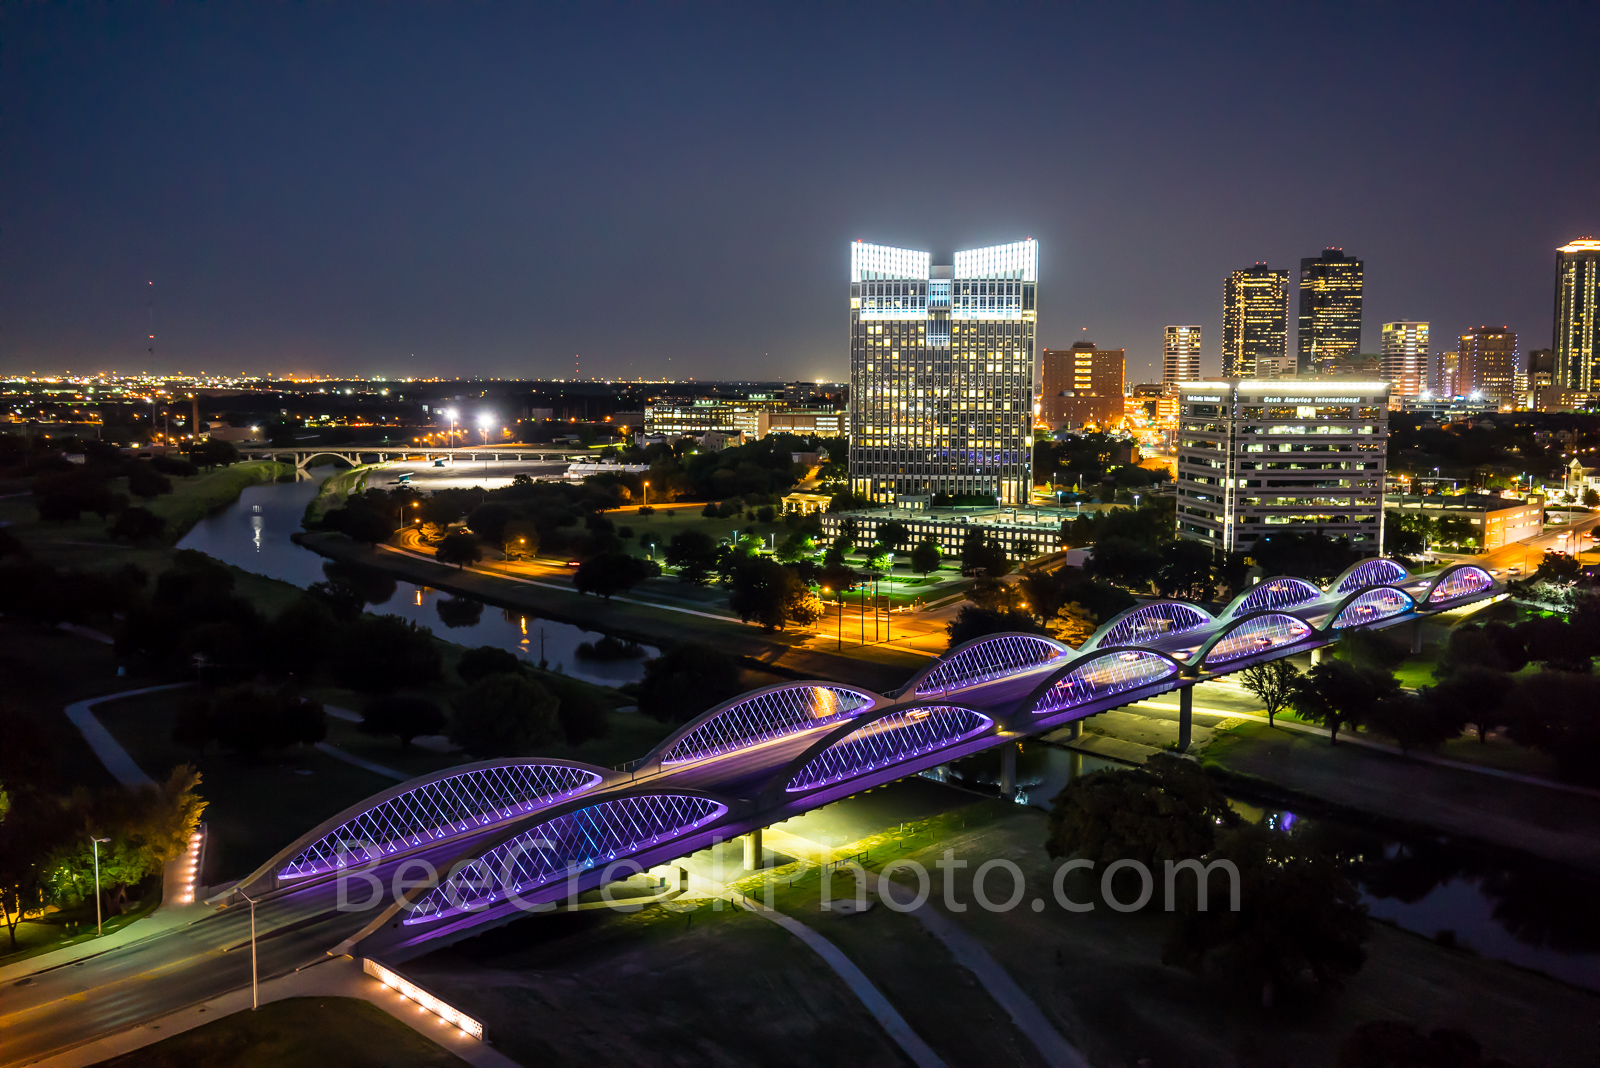 fort worth, ft worth, cityscape, cityscapes, downtown, twillight, seventh street bridge, 7th street bridge, trinity river, tarrant county, dfw metro, night, purple leds,skyline, skylines, reflections, photo